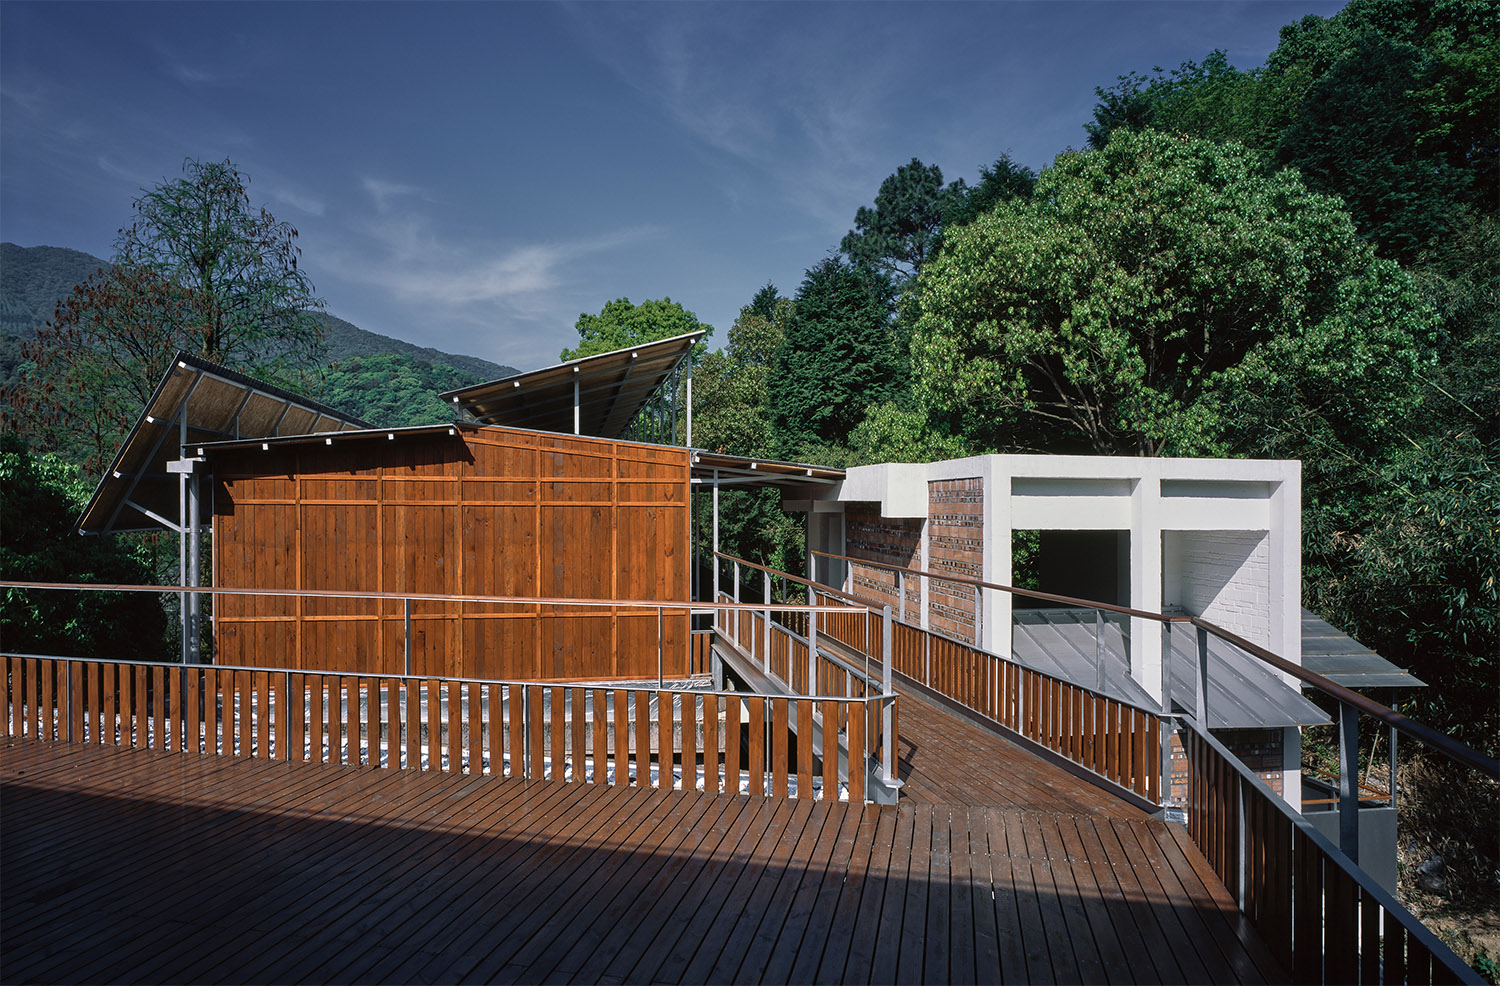 View of the Rooftop Canteen from the Main Building Hao Chen